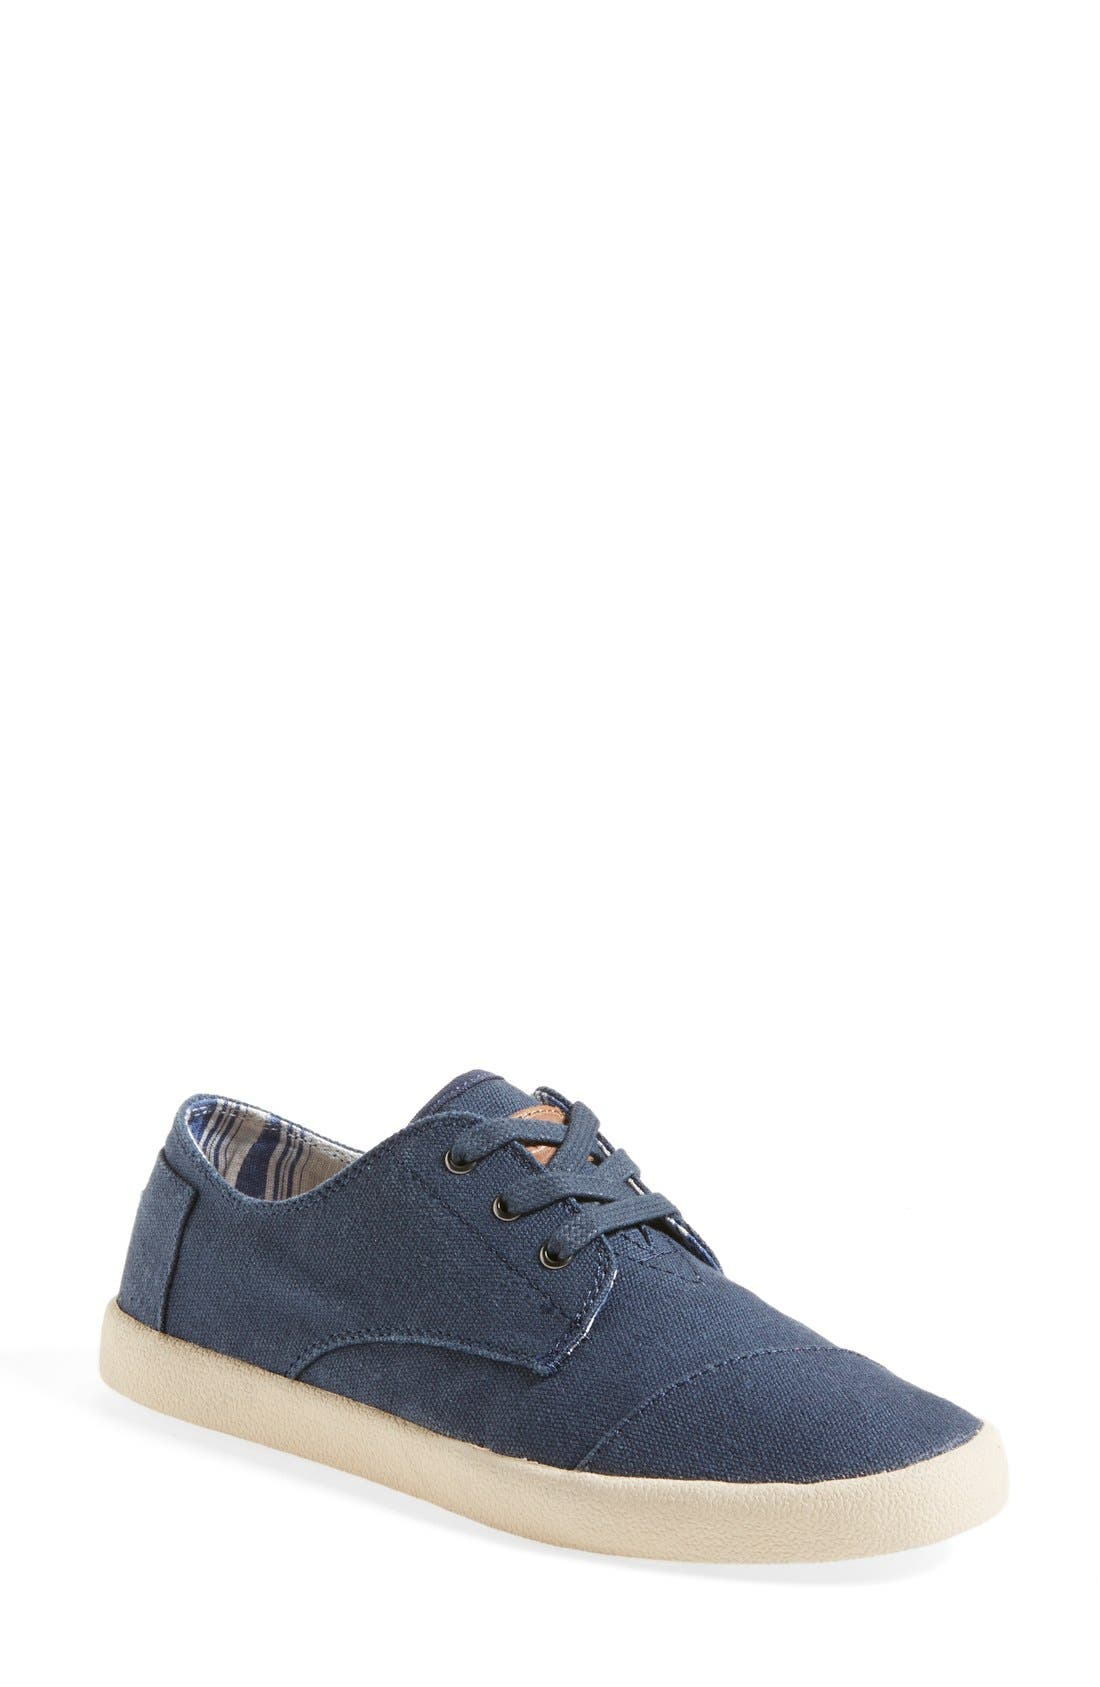 Main Image - TOMS 'Paseo Classic' Sneaker (Women)